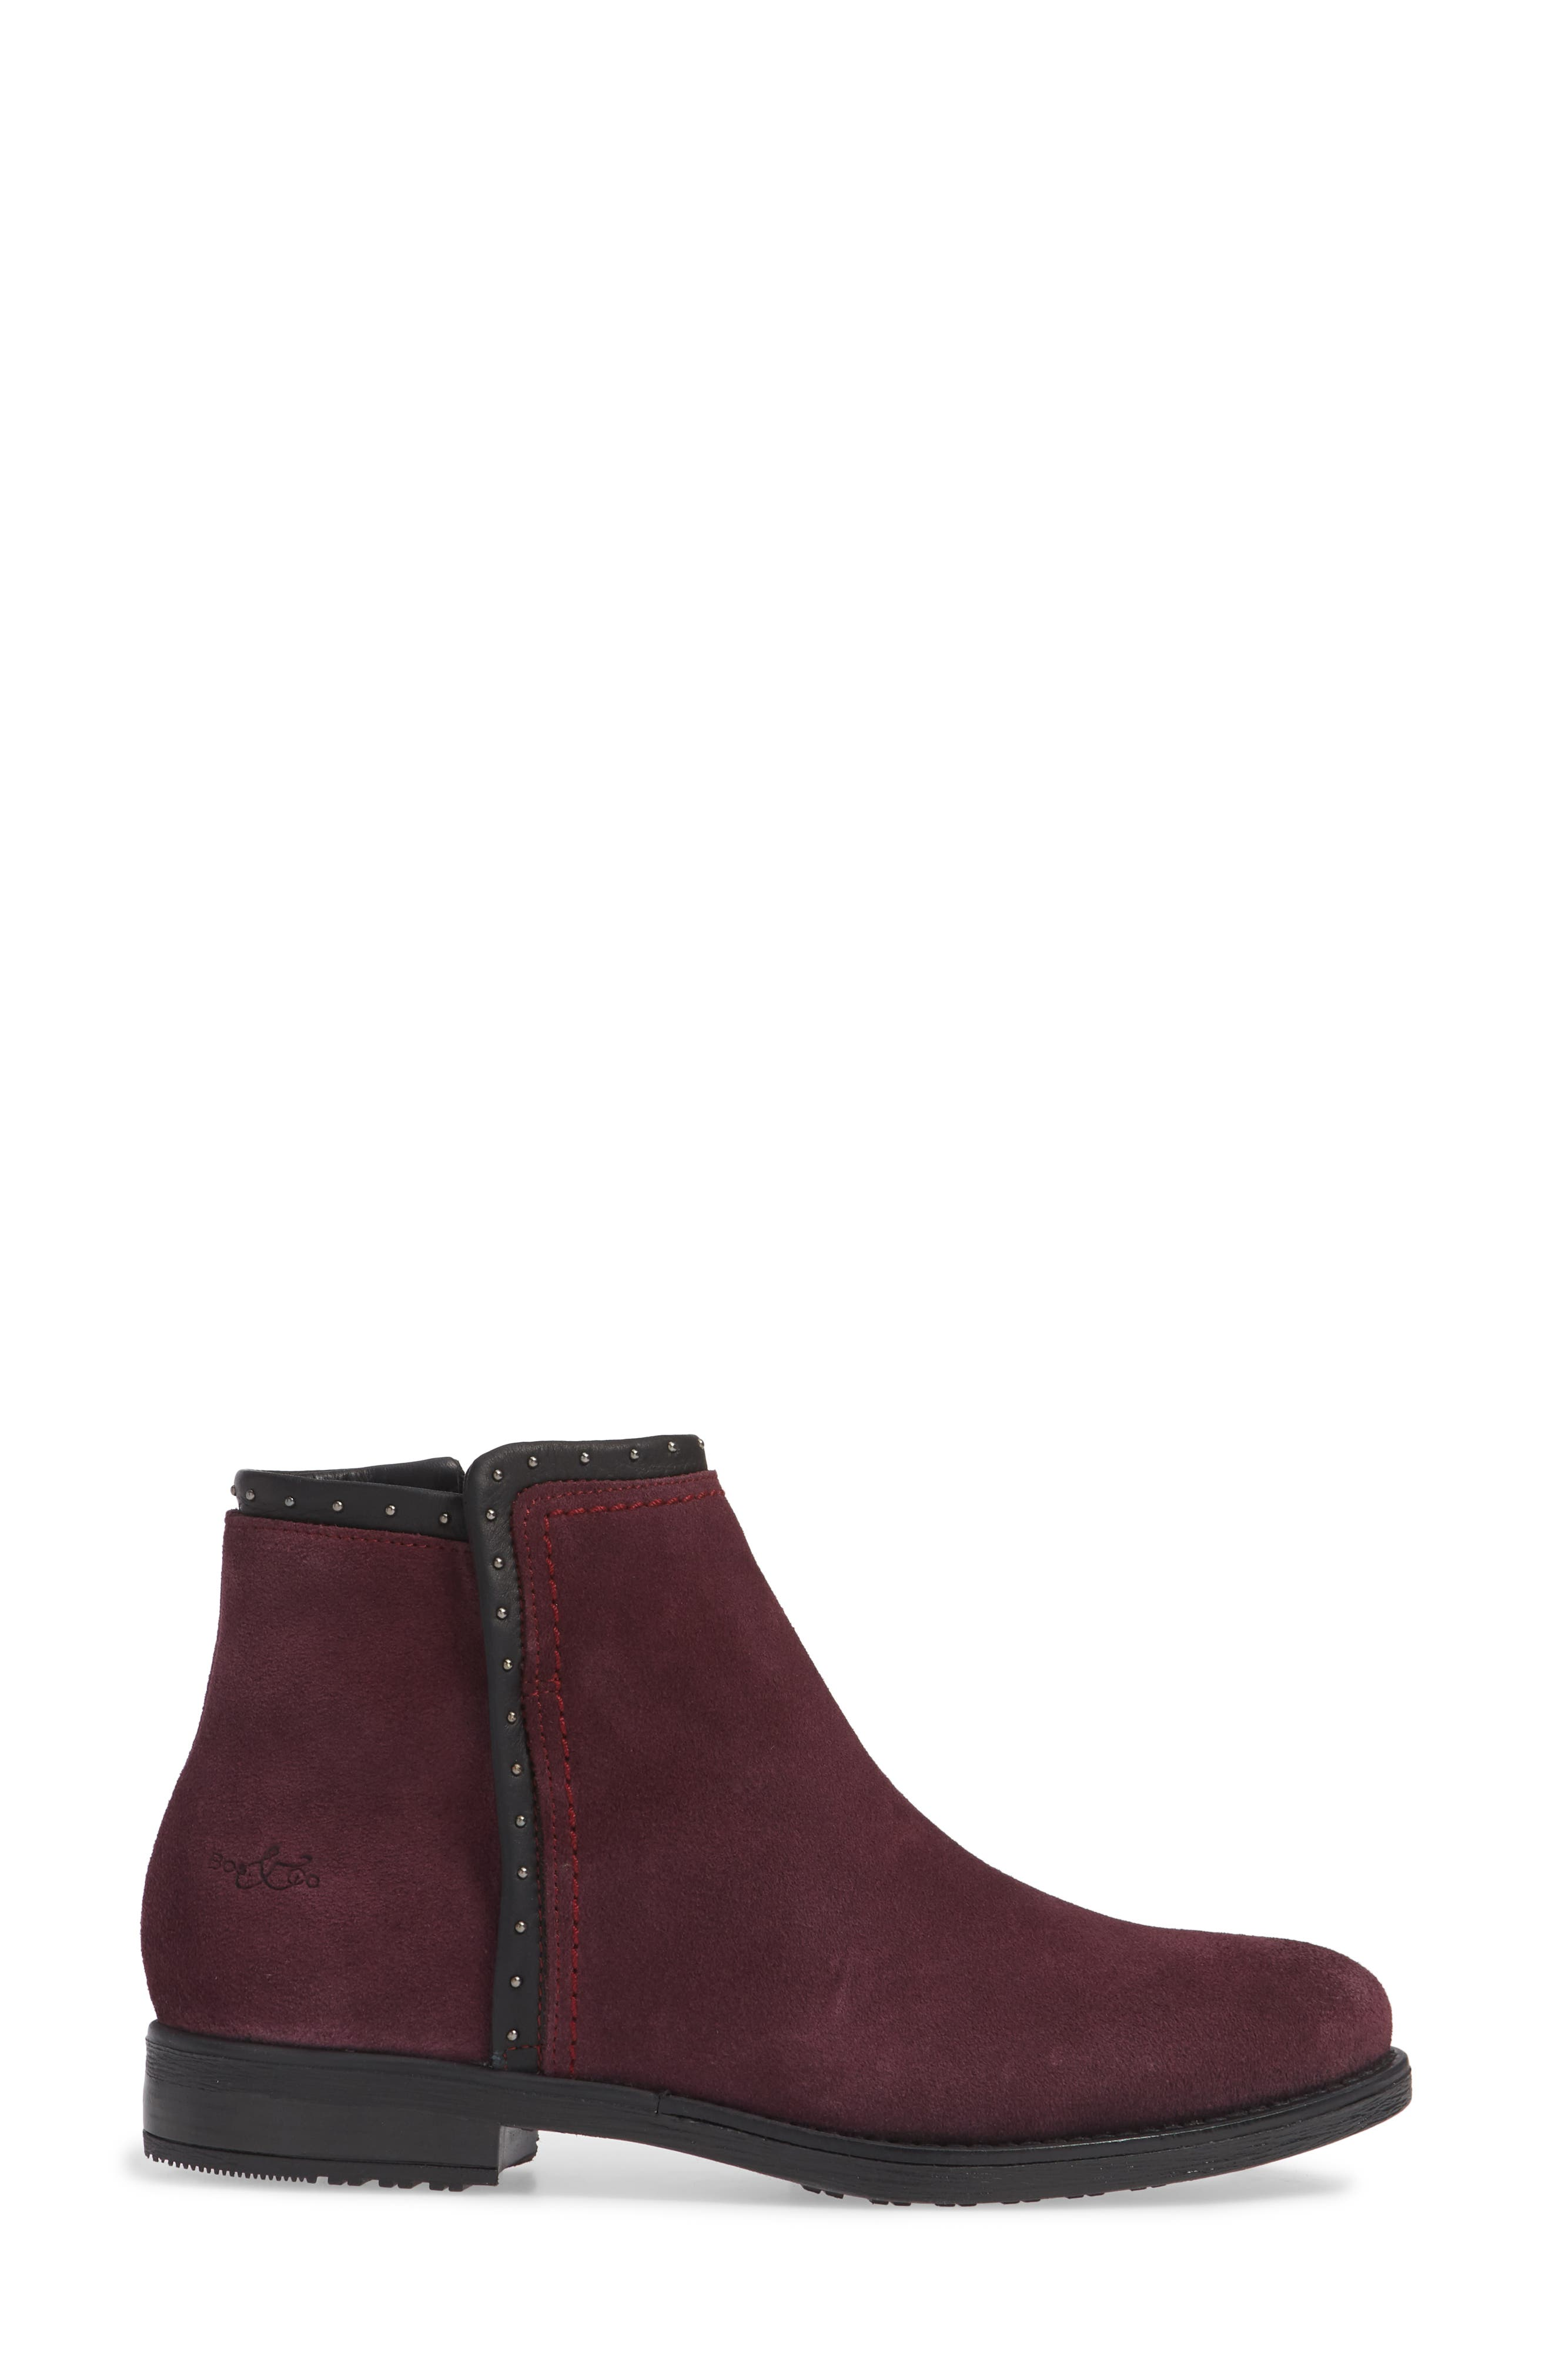 BOS. & CO., Ribos Bootie, Alternate thumbnail 3, color, PRUNE SUEDE